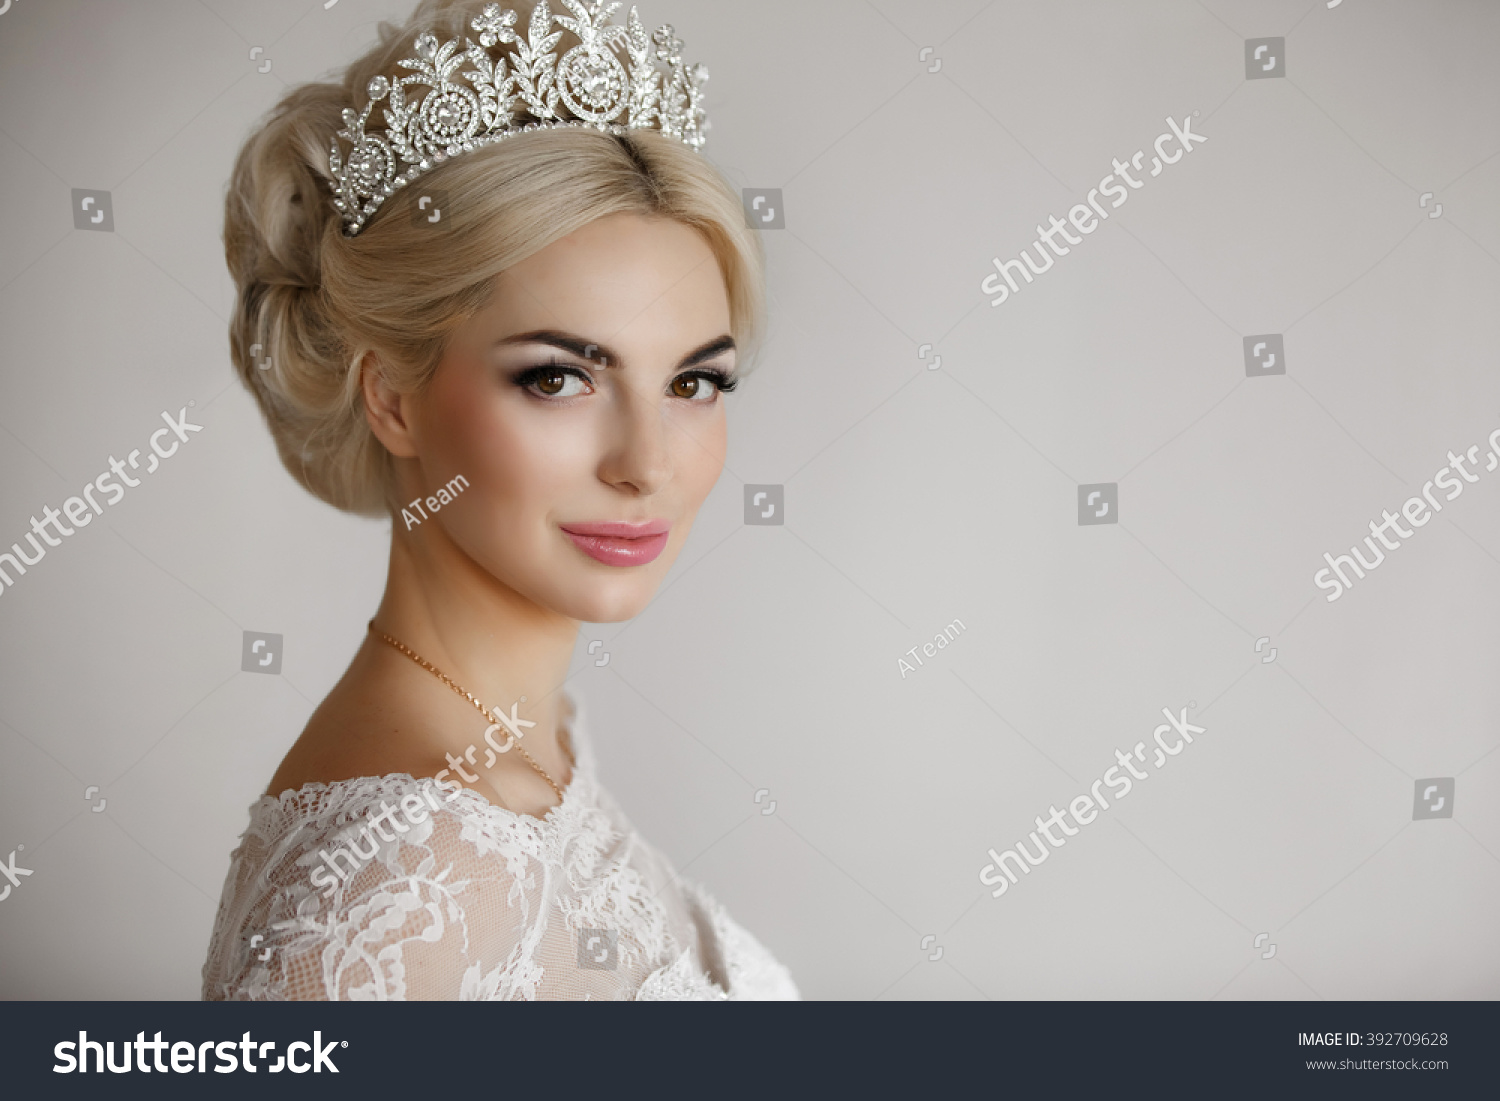 Beautiful Bride Portrait Wedding Makeup Hairstyle Stock Photo ...